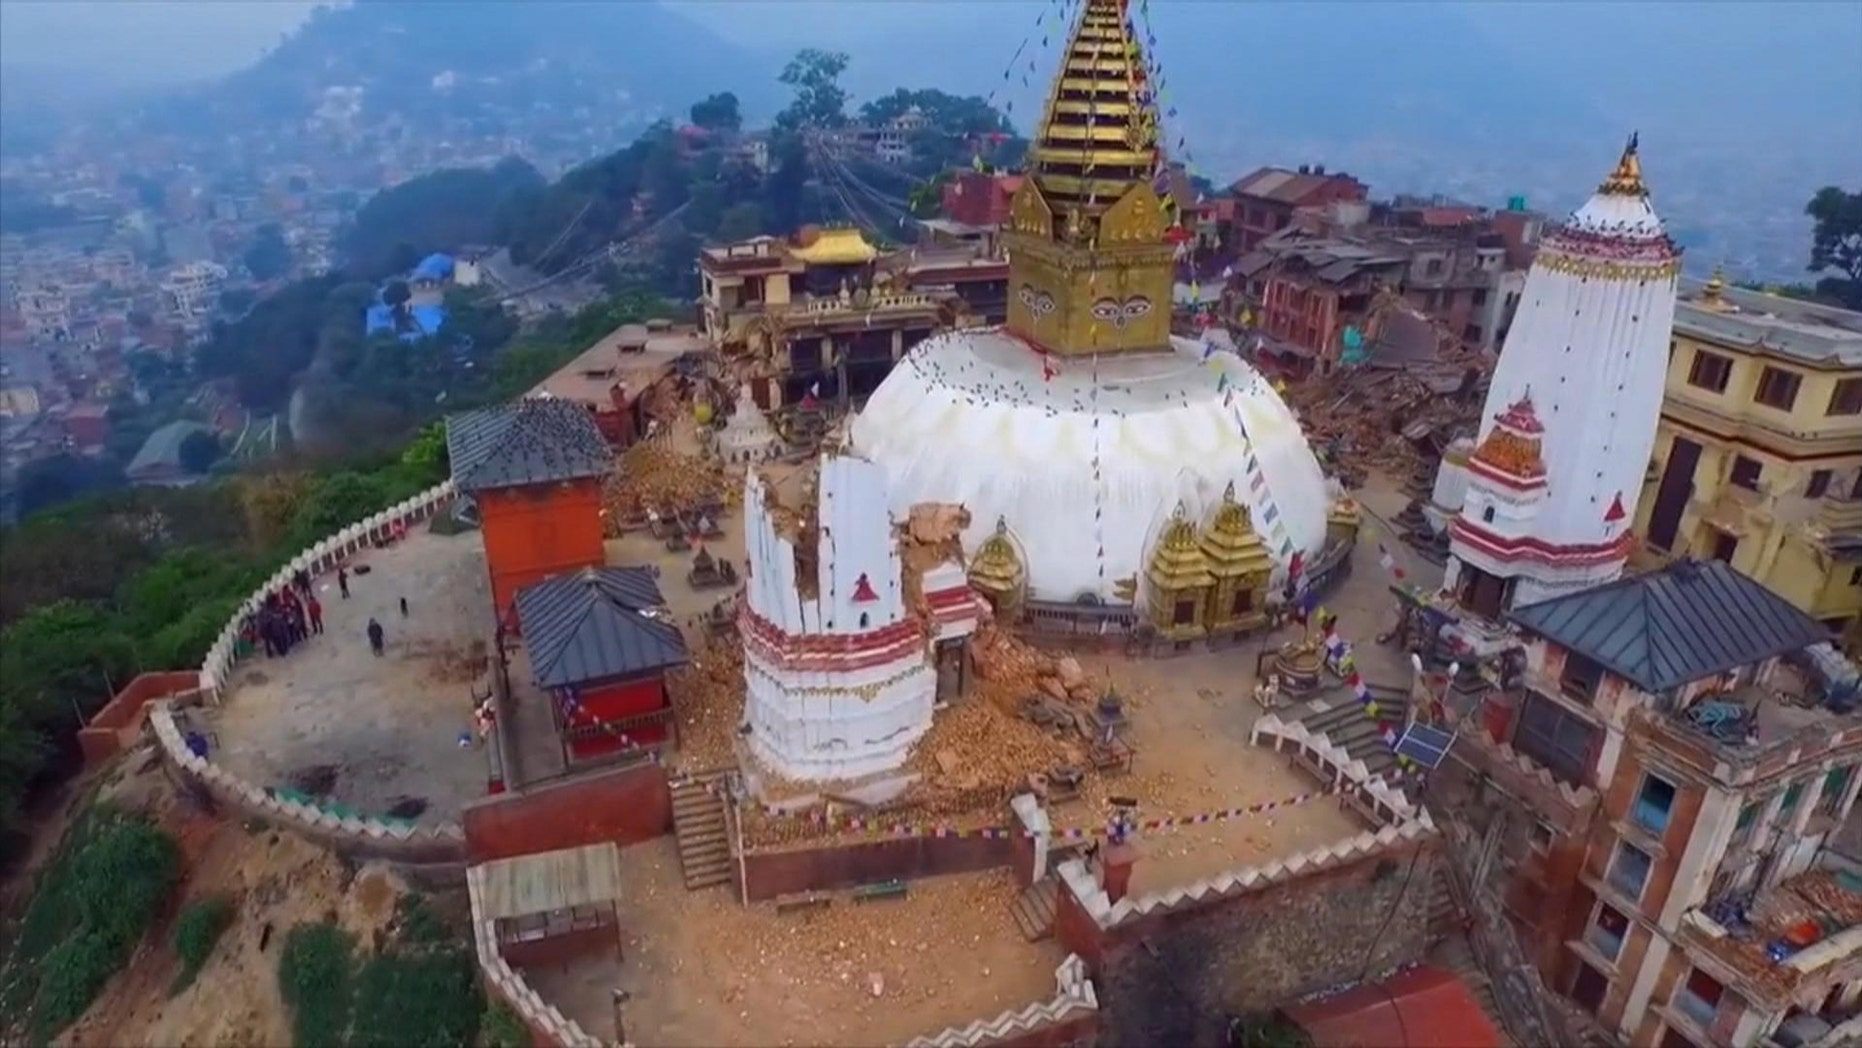 Video taken from a drone Saturday April 25 2015 shows devastation in the Nepalese capital Kathmandu.